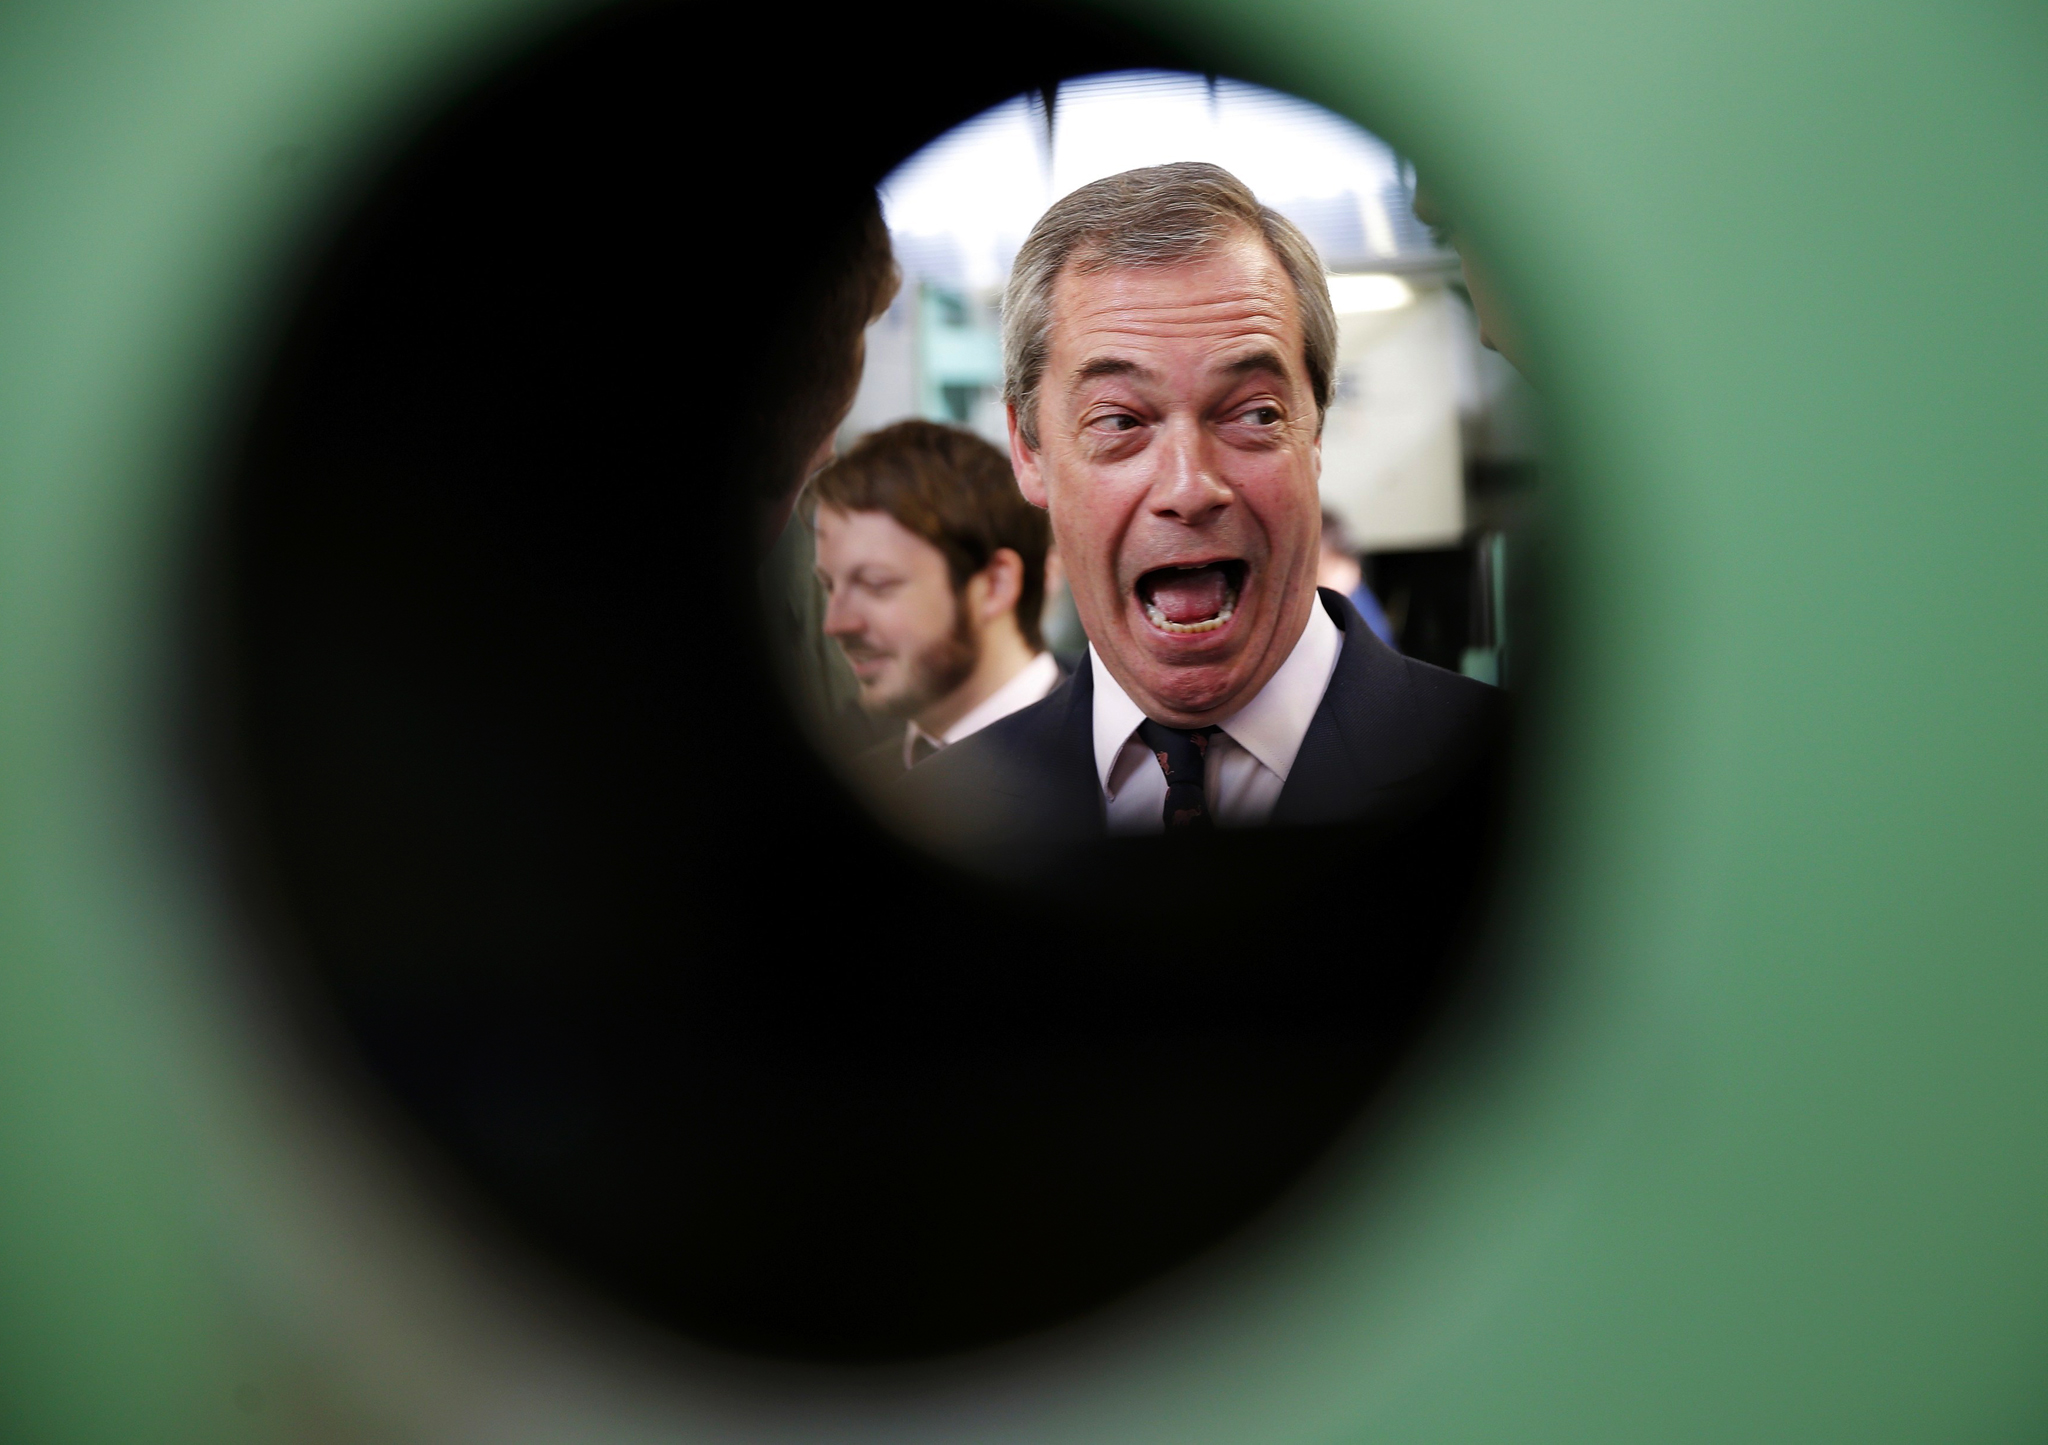 Nigel Farage, the leader of the United Kingdom Independence Party, laughs during a visit to a factory in Clacton, Essex.